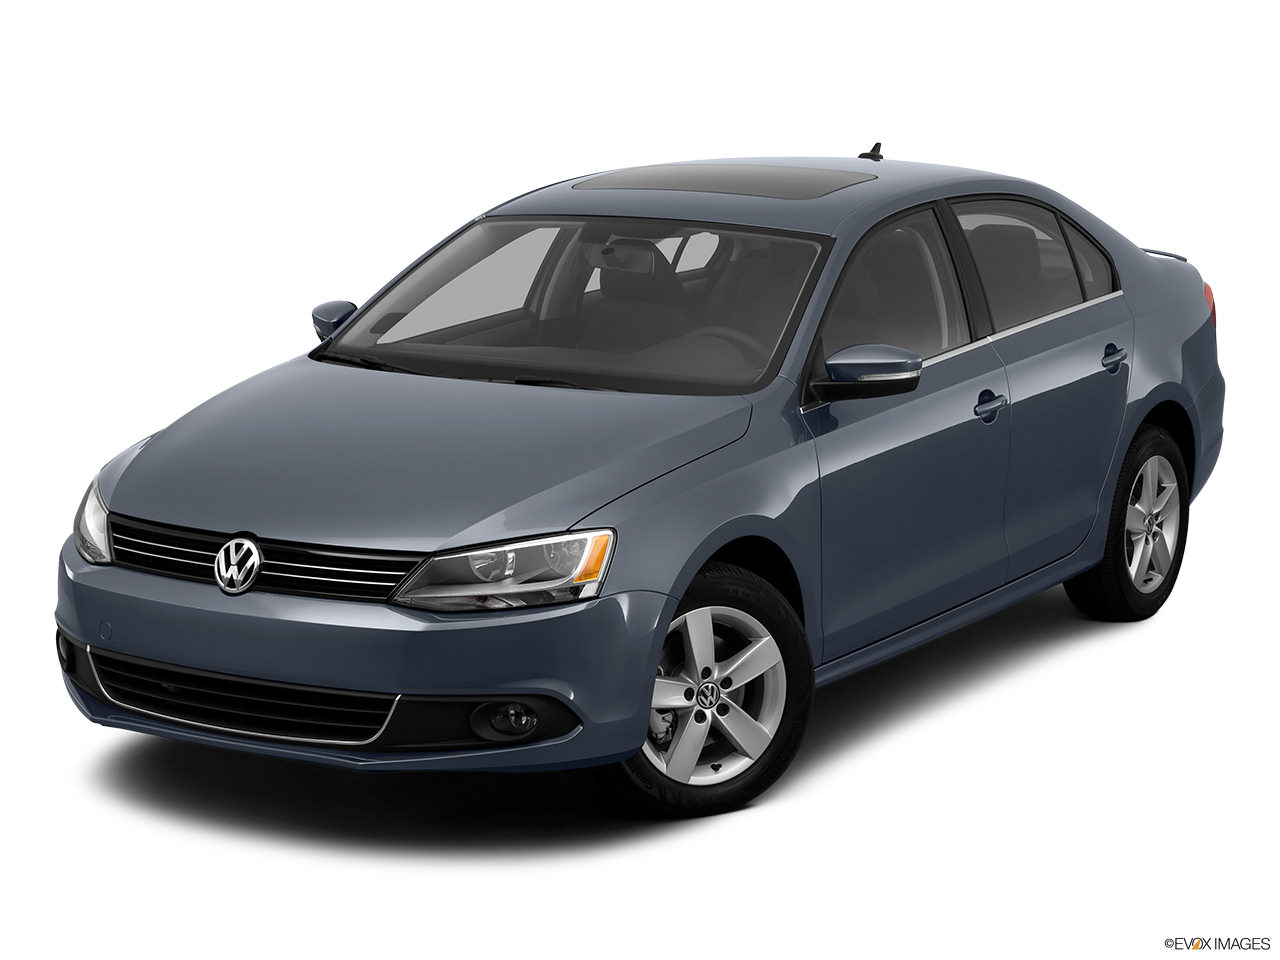 vw for without news cars sale might owners being keep tdi jetta driving fixed their some volkswagen beetle